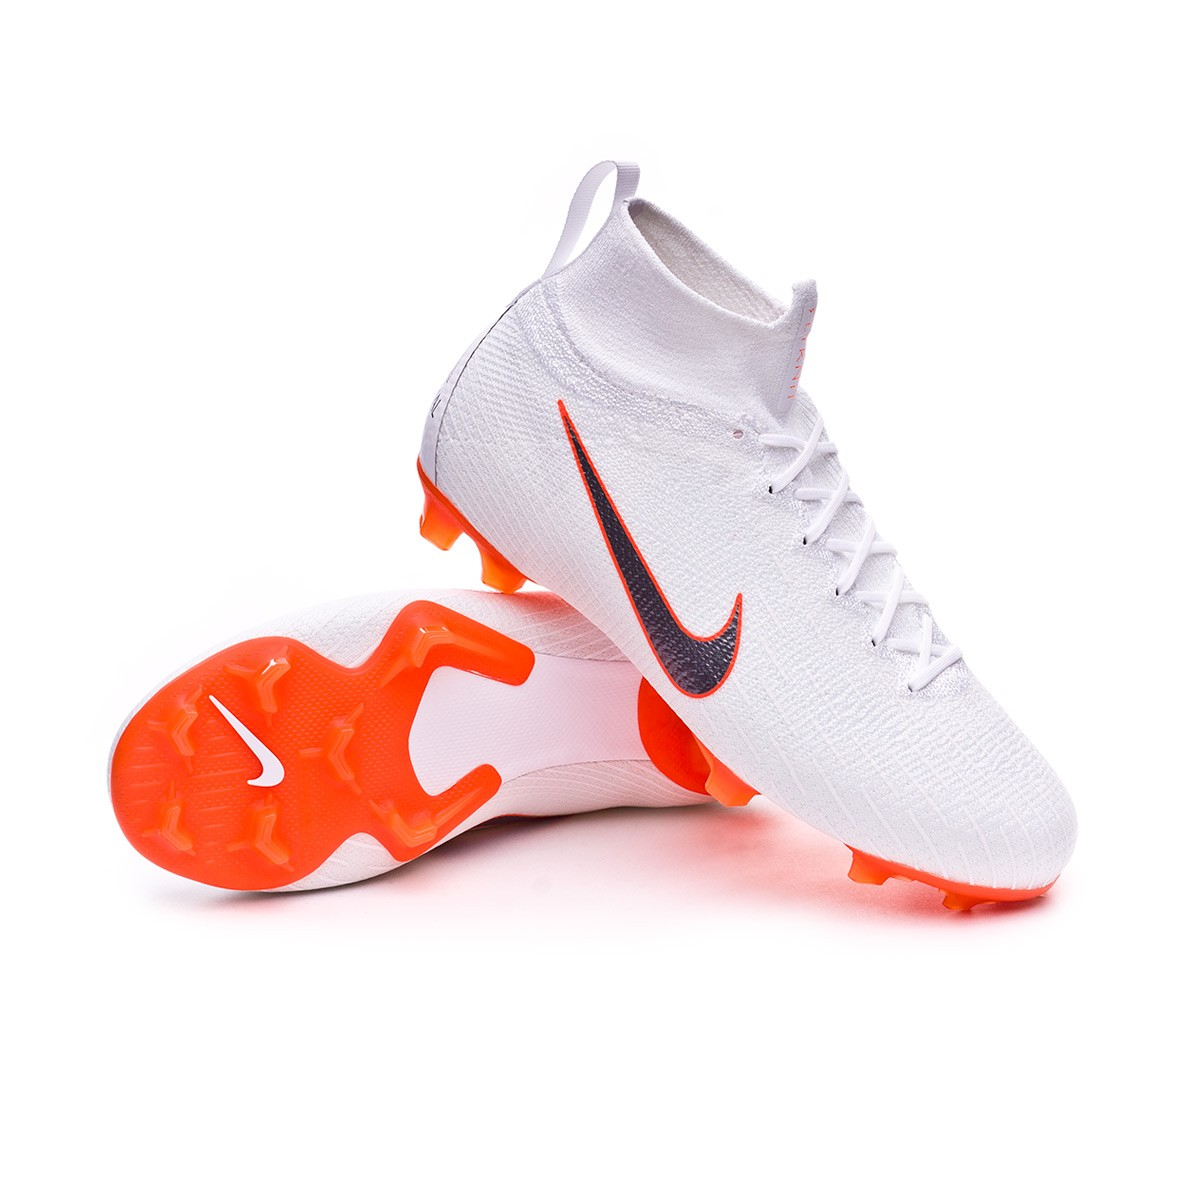 8c992ec9d Football Boots Nike Kids Mercurial Superfly VI Elite FG White ...